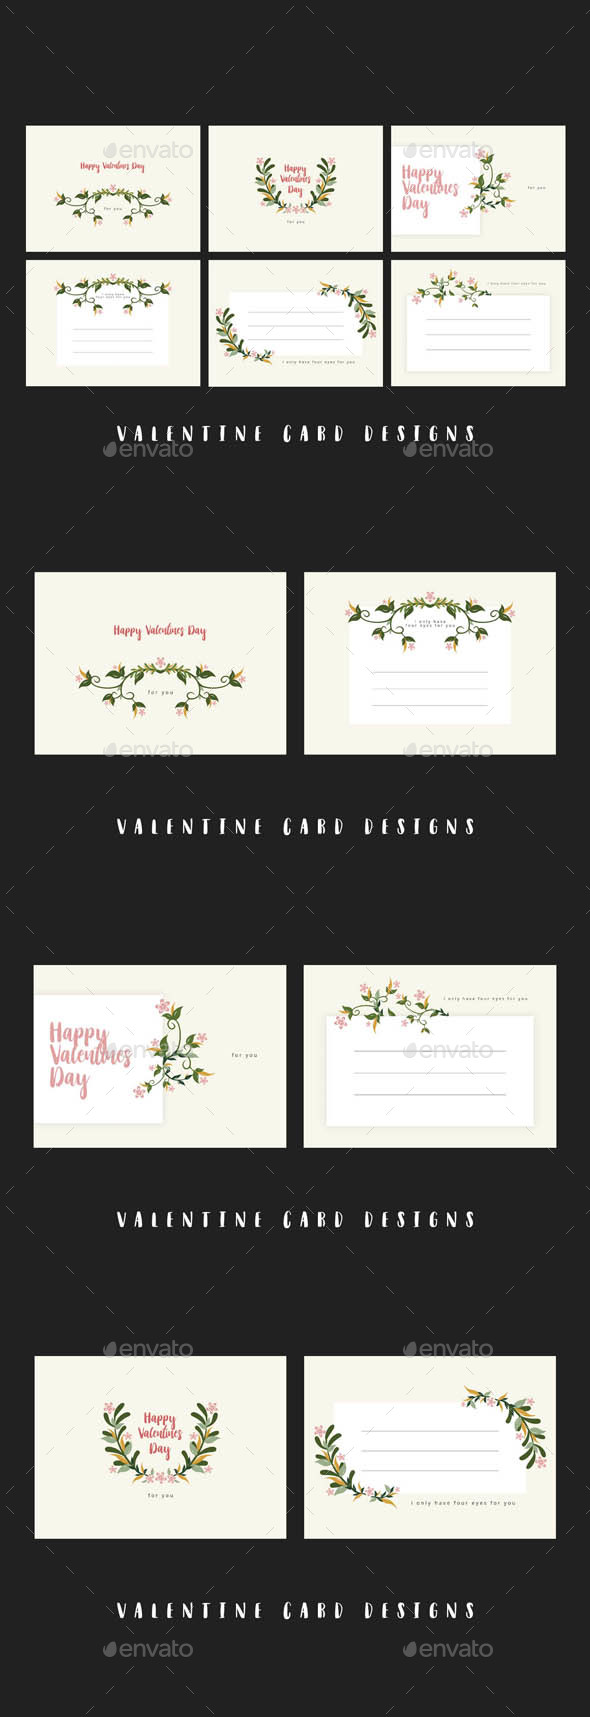 Valentine Card Design - Greeting Cards Cards & Invites